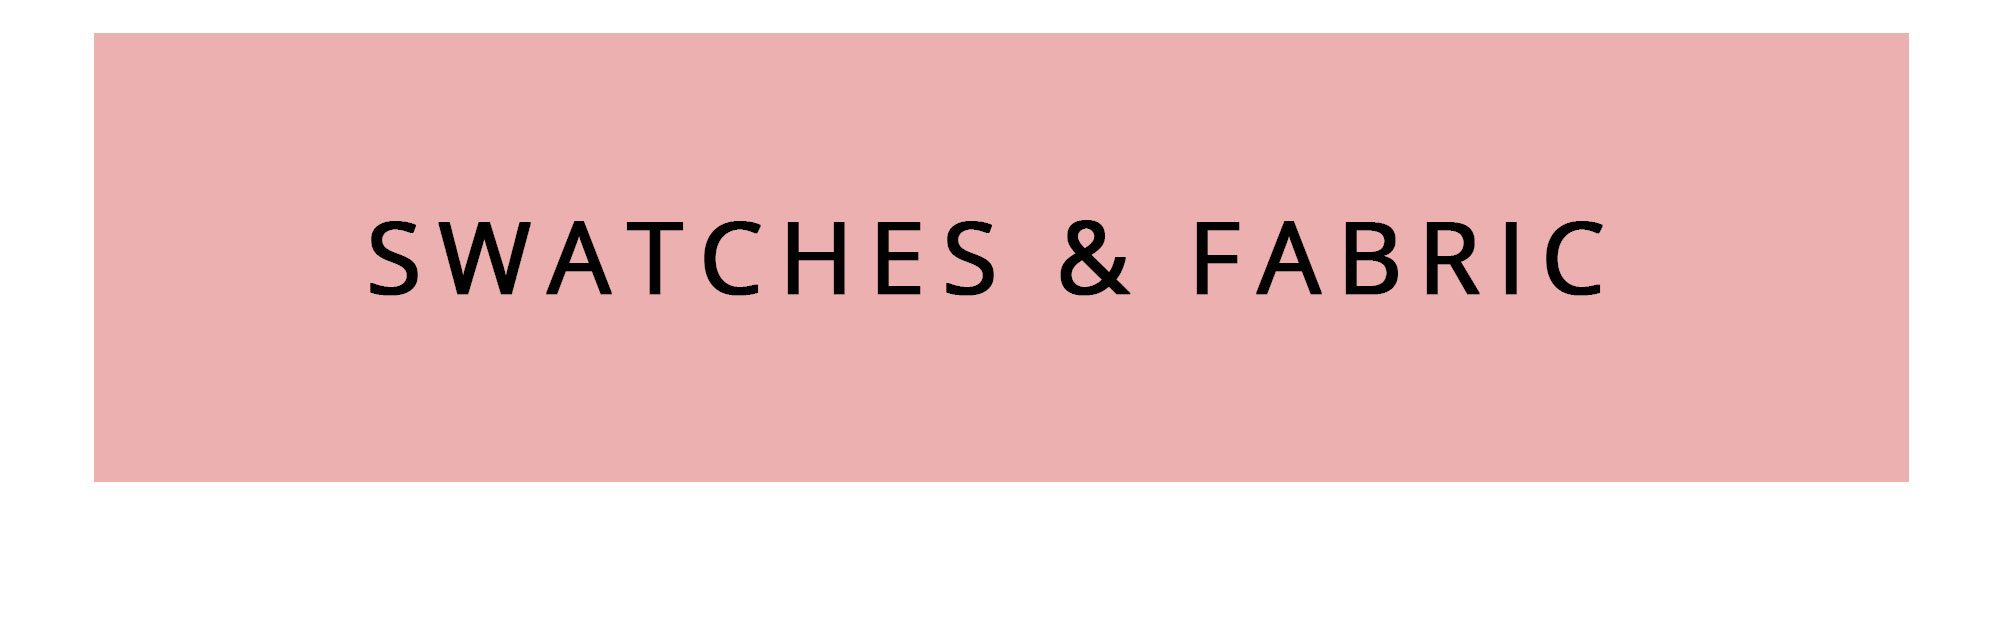 swatches and fabric